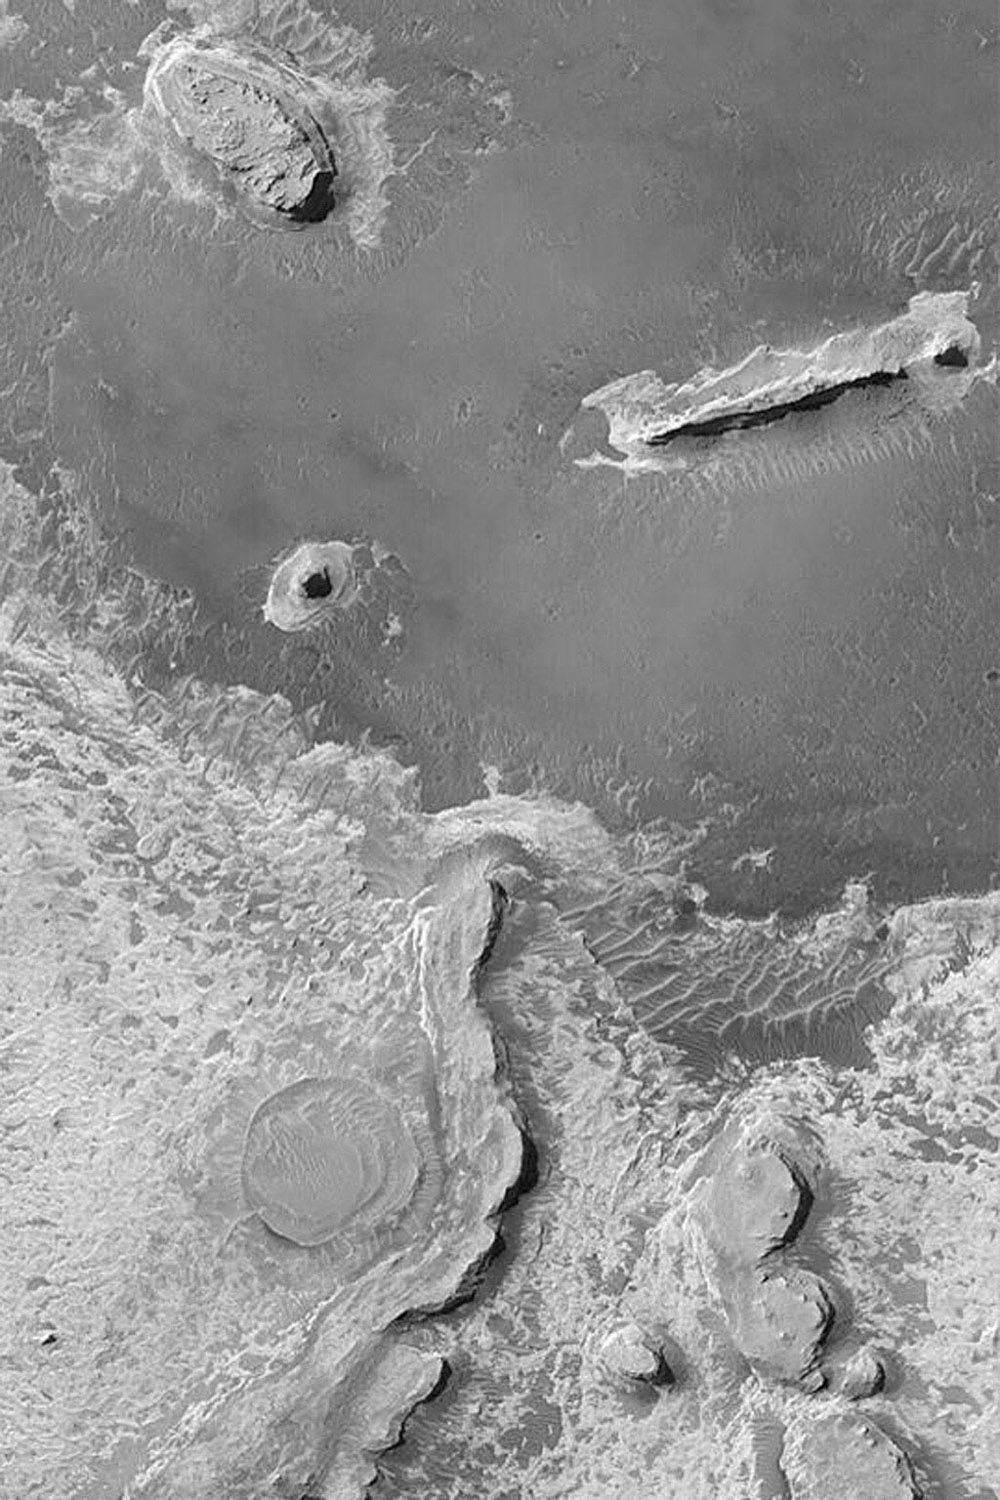 NASA's Mars Global Surveyor shows of layered sedimentary rock outcrops in northern Sinus Meridiani on Mars featuring several buttes and ridges formed in rock that is somewhat resistant to erosion.